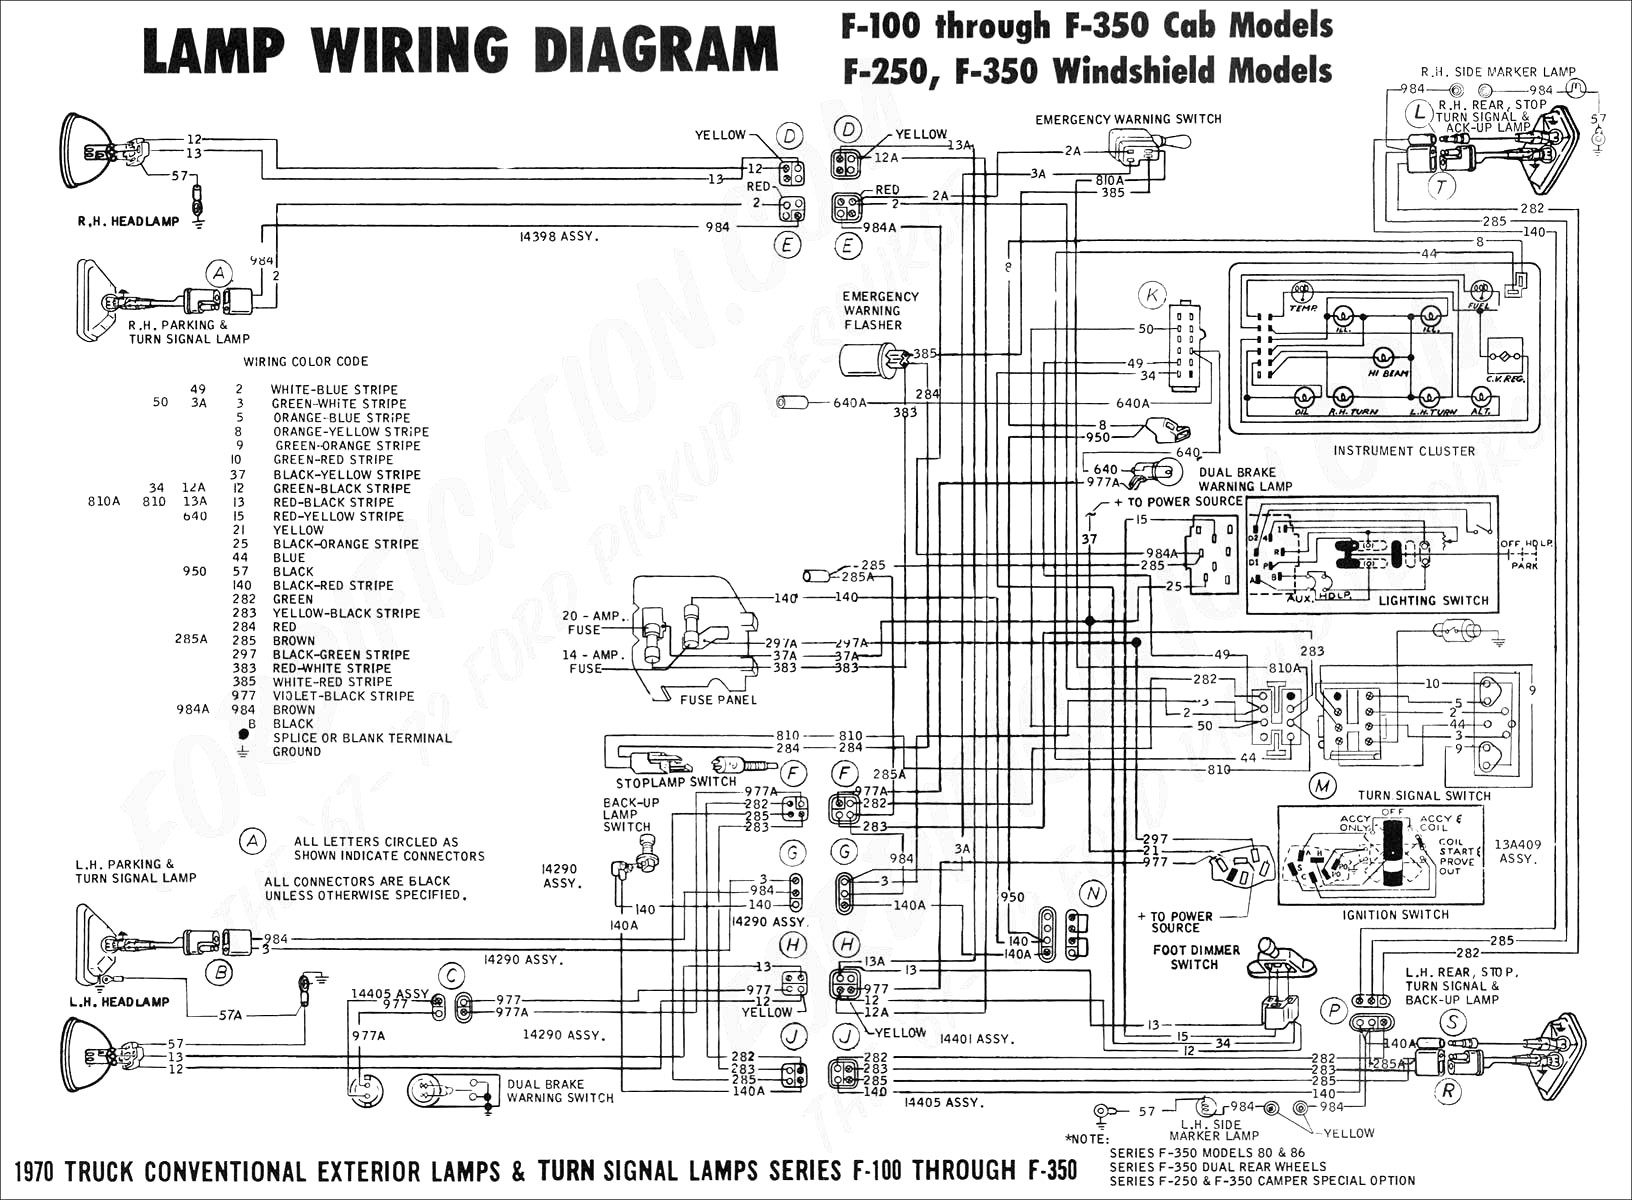 2001 Ford Taurus Engine Diagram My Wiring Blaupunkt Radio Focus Stereo Mk1 And Mk3 2004